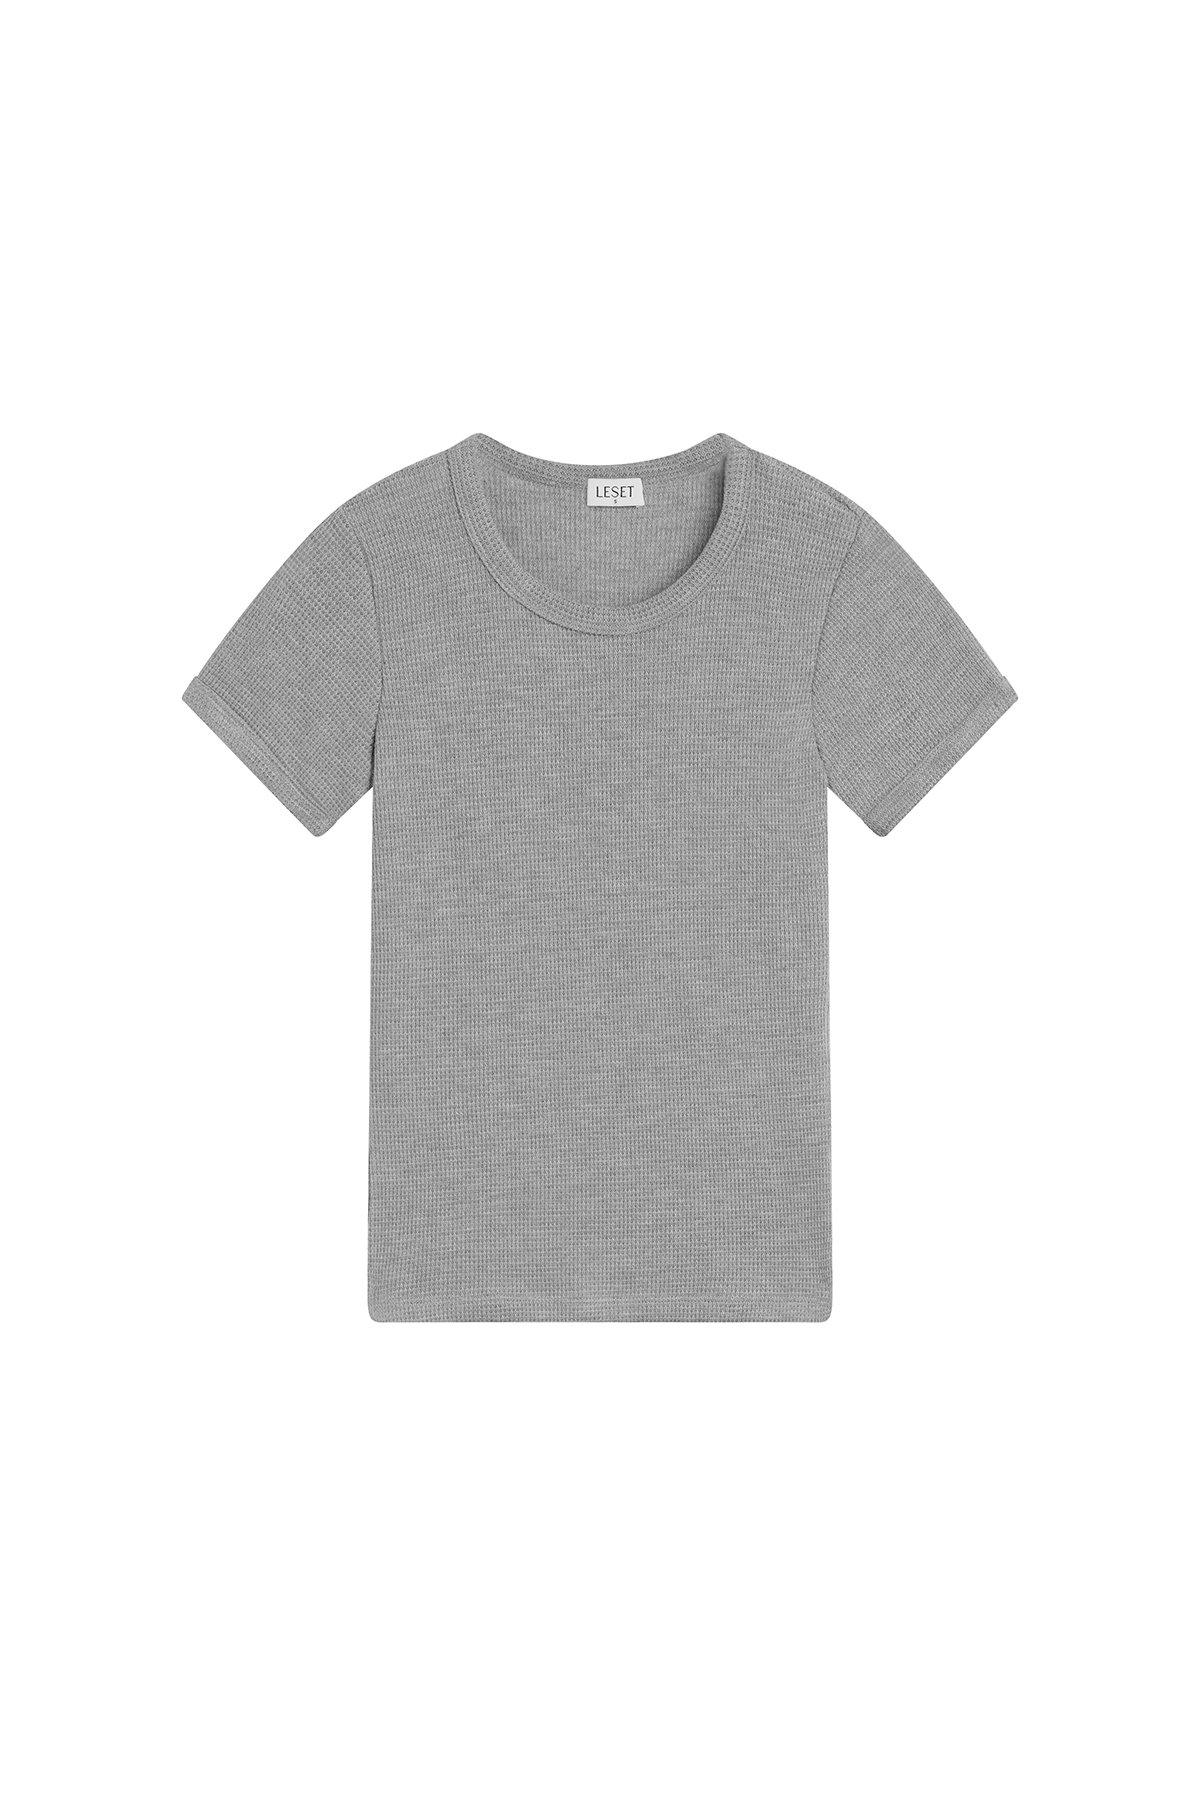 Willow Waffle Slim Fit Tee - Light Heather Grey 3